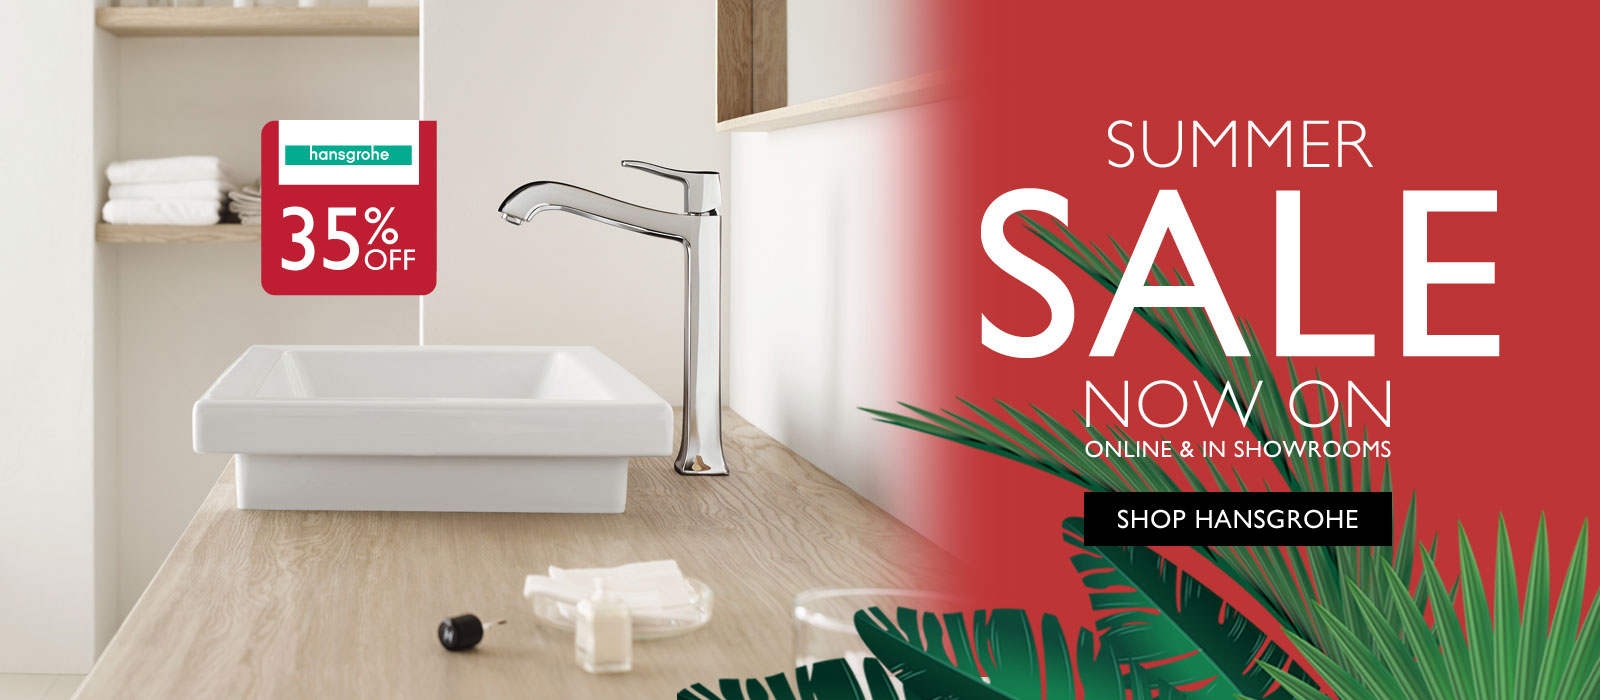 Save 35% off Hansgrohe